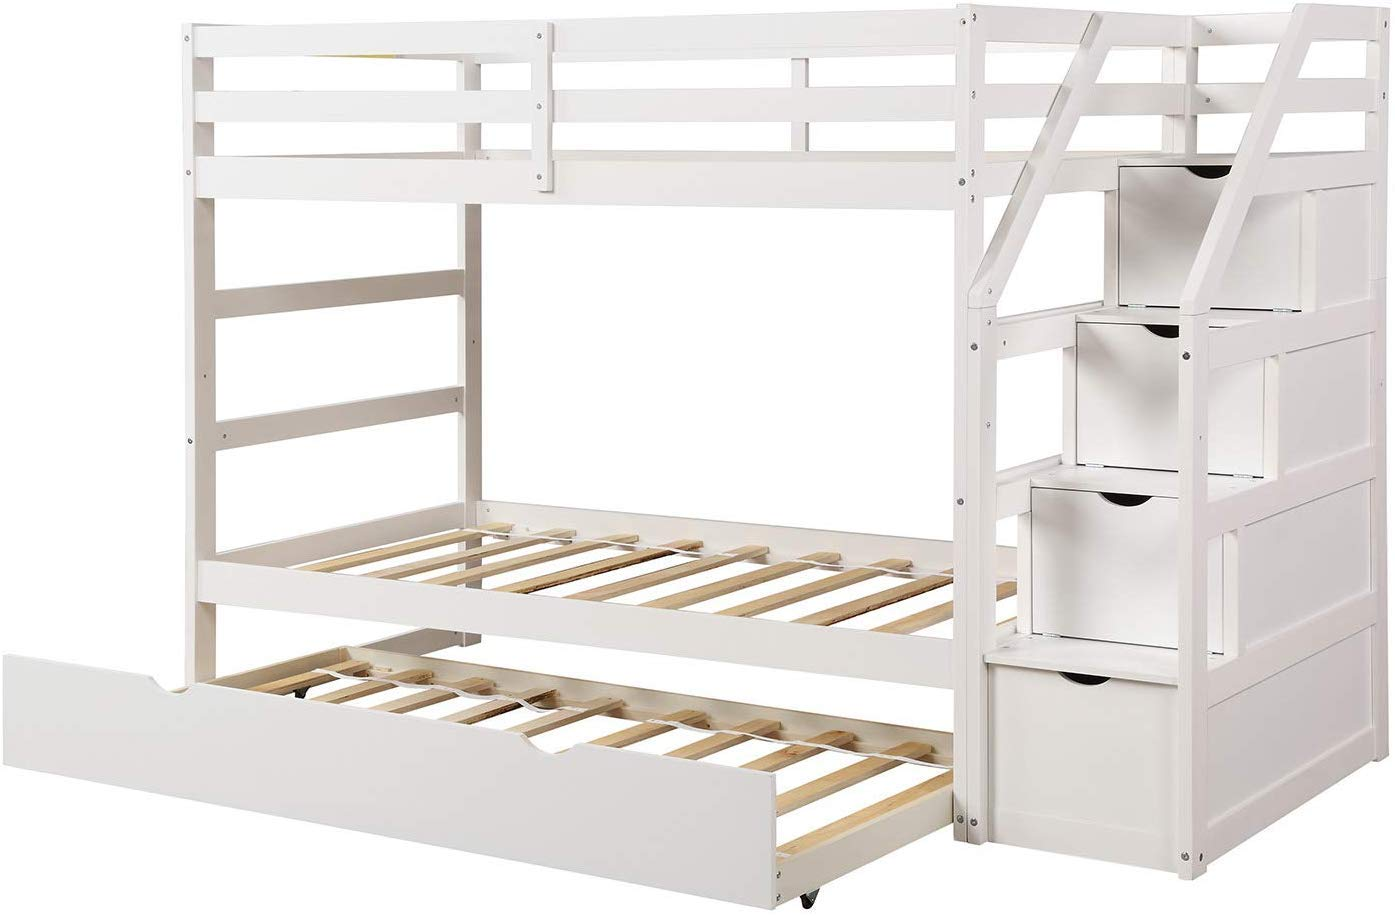 MIERES Solid Wood Hardwood Twin Over Two Bunk Frame with Staircase and 4 Storage Drawers Natural Finish Bed, White